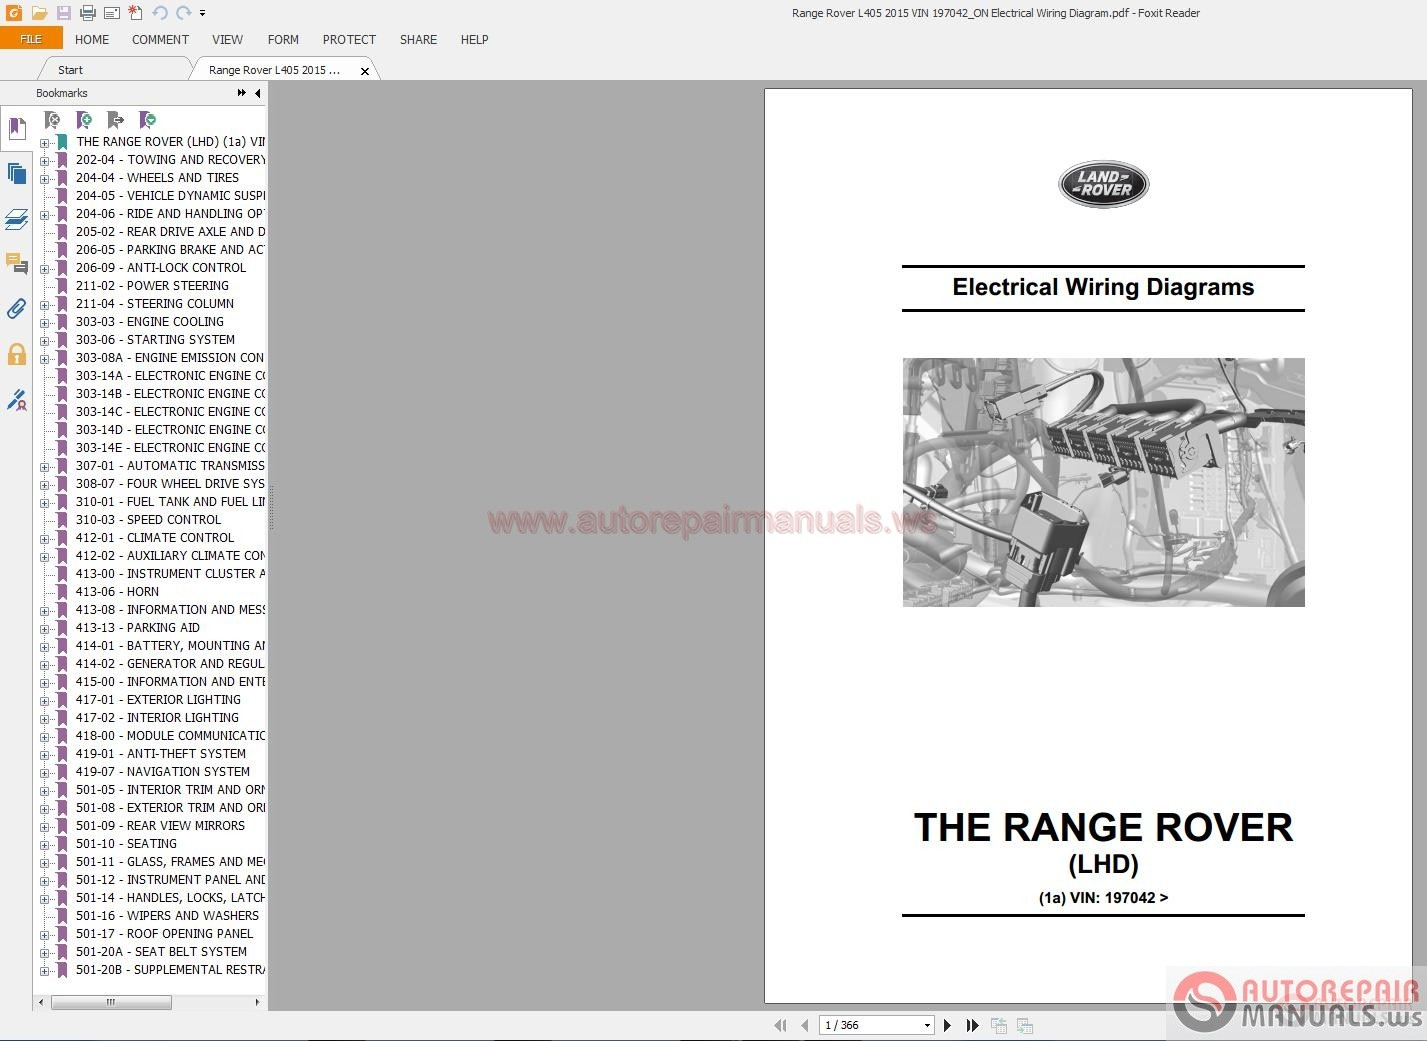 2015 range rover wiring diagrams auto electrical wiring diagram u2022 rh 6weeks co uk